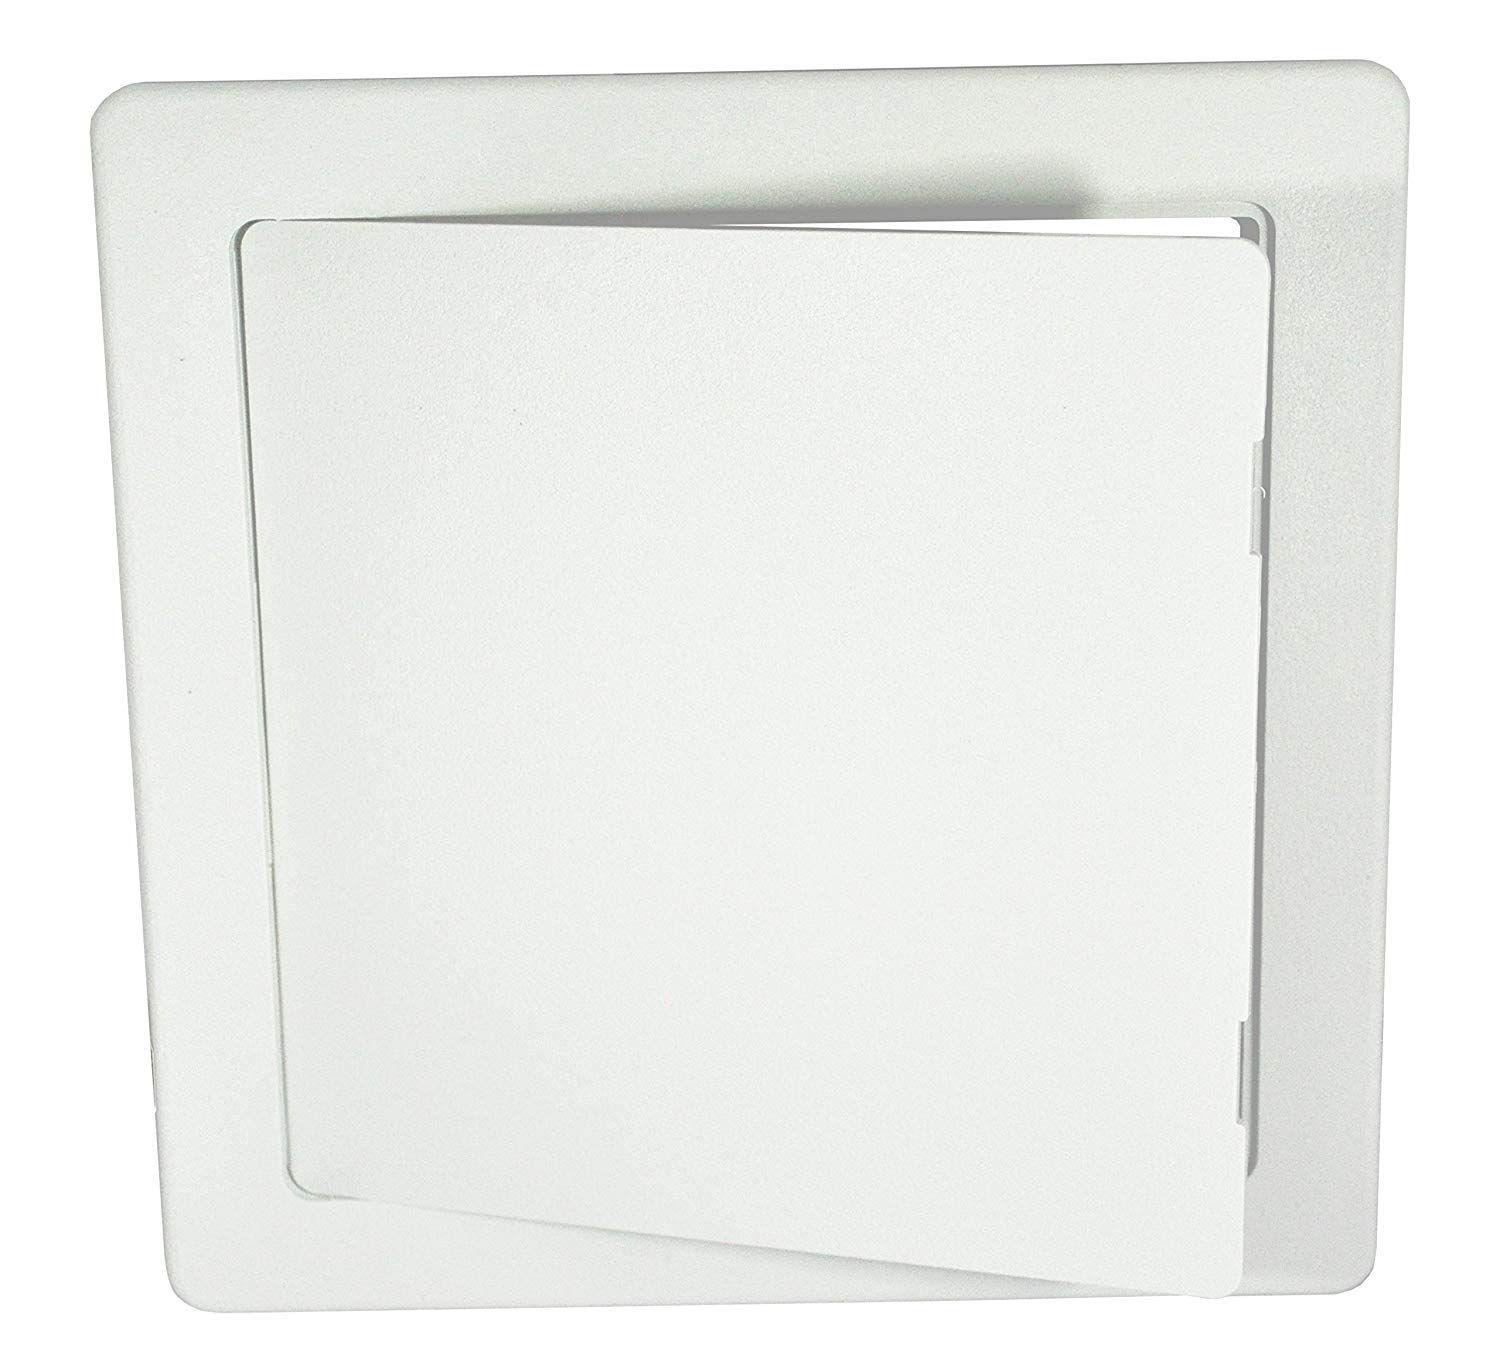 Surface Fit White ABS Plastic Access Panel/Inpsection Hatch 350mm x 350mm (14' x 14') - Hide: taps, valves, Wiring, Meters etc. AXBO